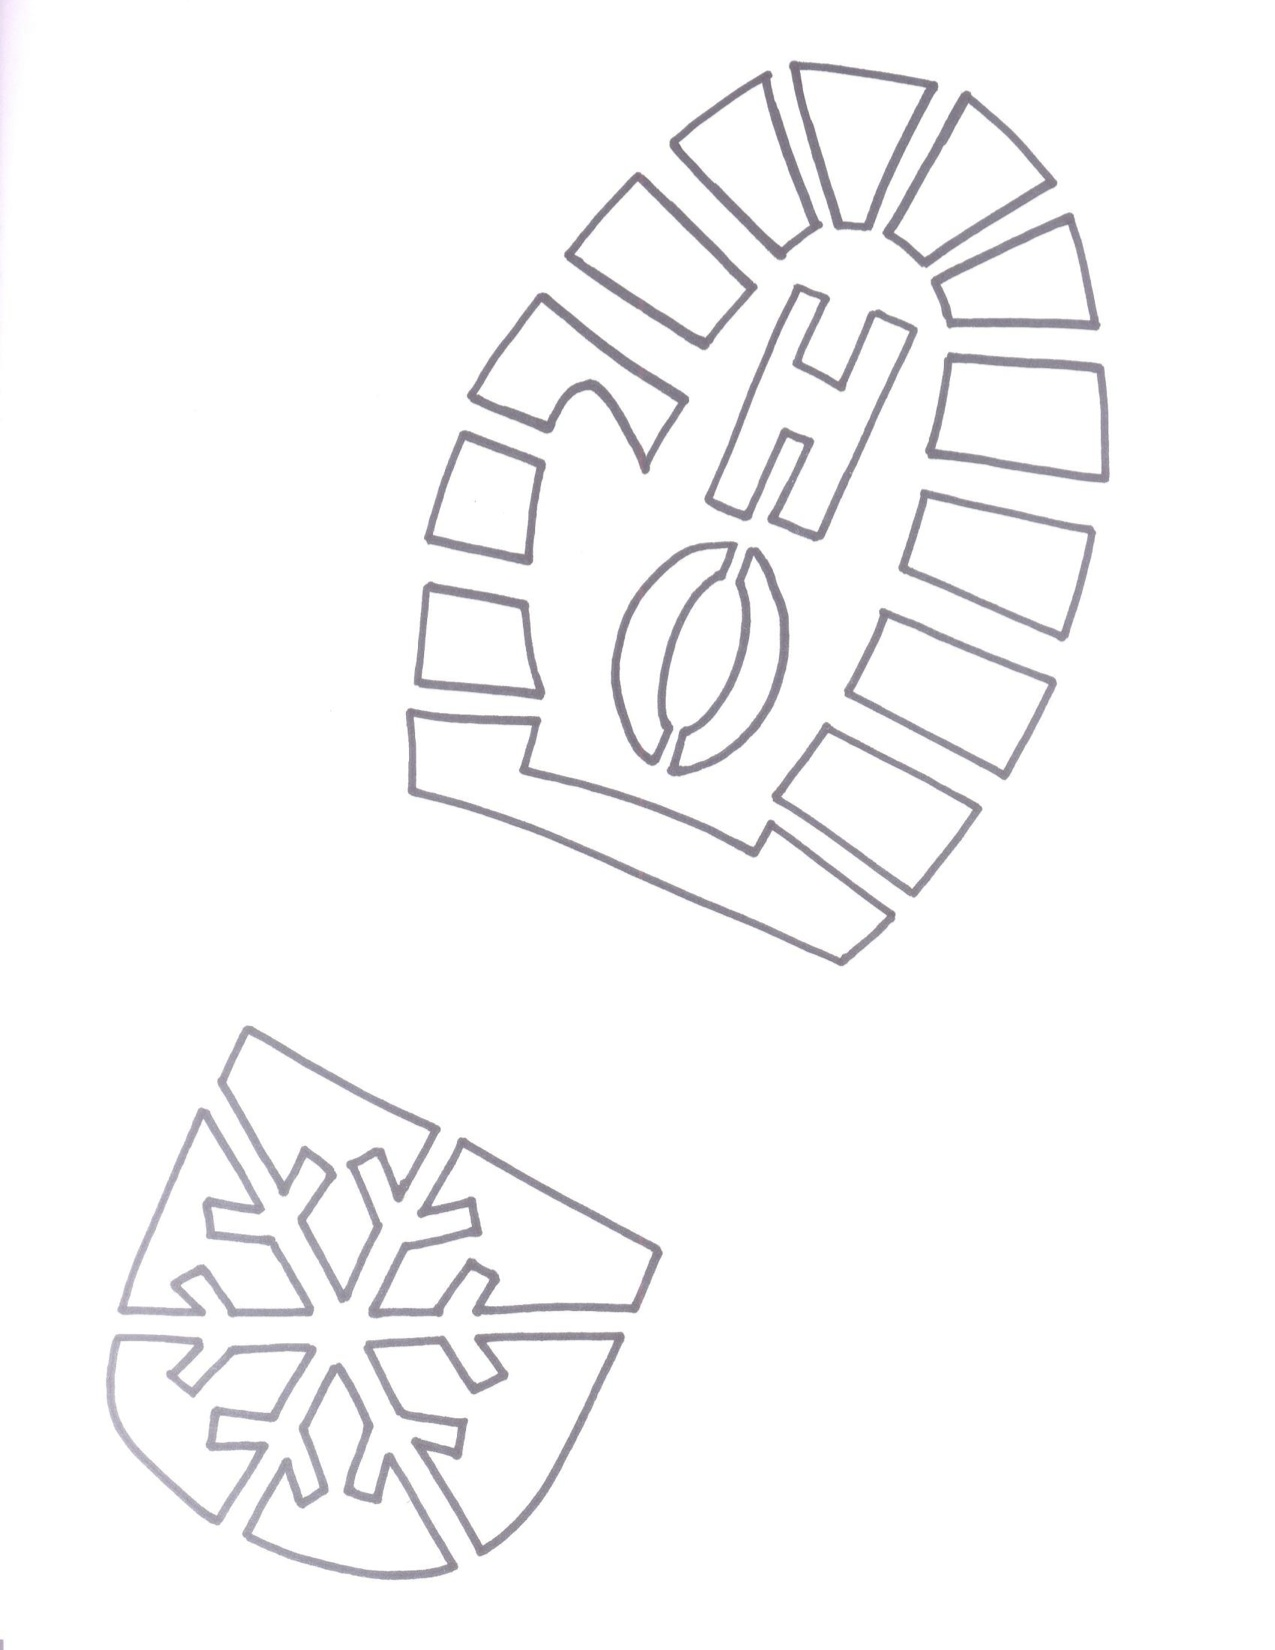 Free Footprint Template Download Free Clip Art Free Clip Art On Clipart Library